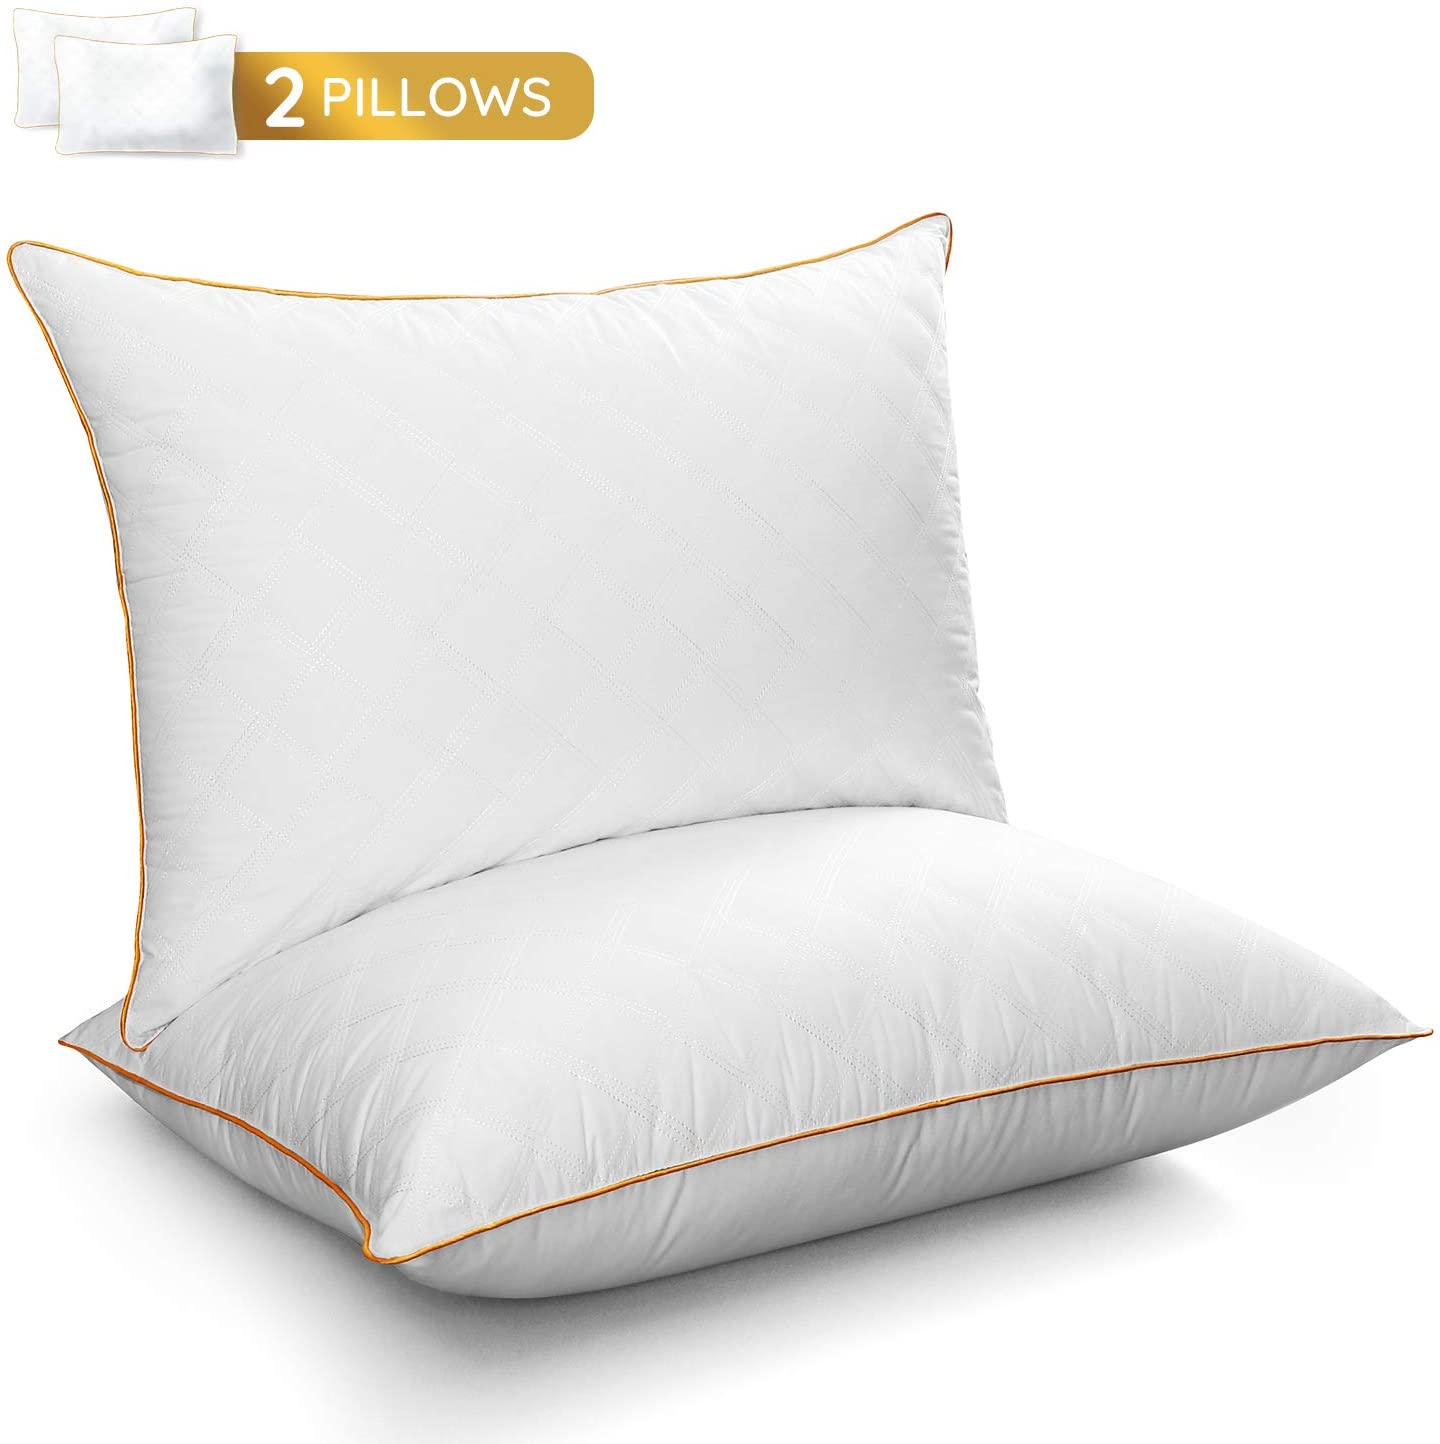 LUTE Standard Pillow Set of 2, Bed Pillows Down Alternative Hypoallergenic Cooling Sleeping Pillow, Soft Premium Plush Fiber Fill for Side Back Stomach Sleepers, 20x26 inches